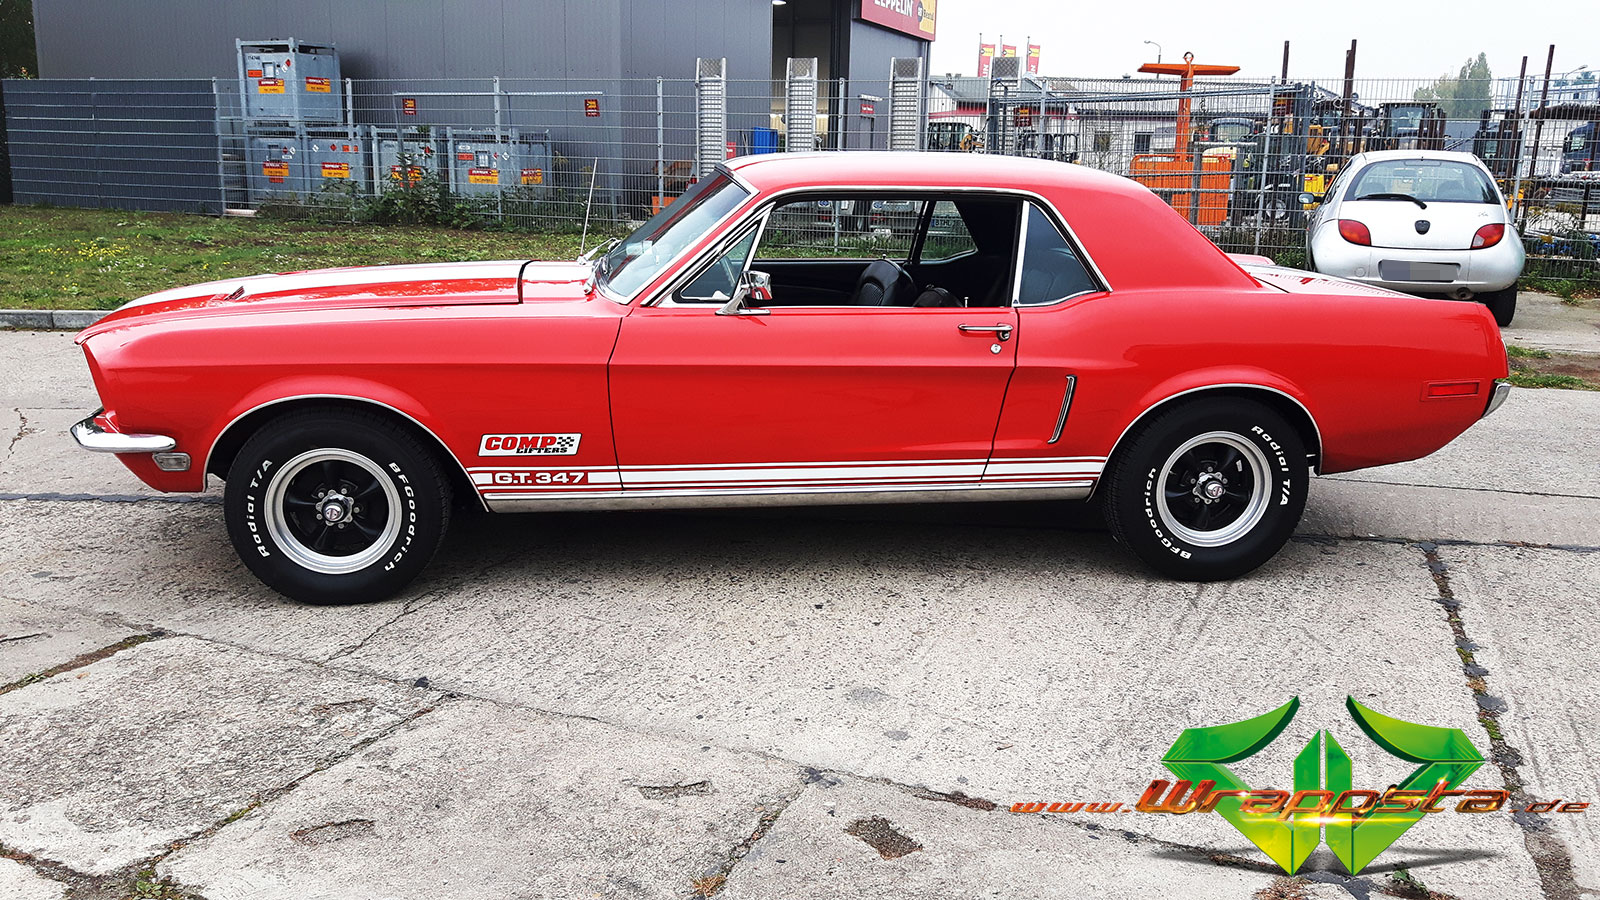 ford mustang glanz weiss wrappsta berlin. Black Bedroom Furniture Sets. Home Design Ideas